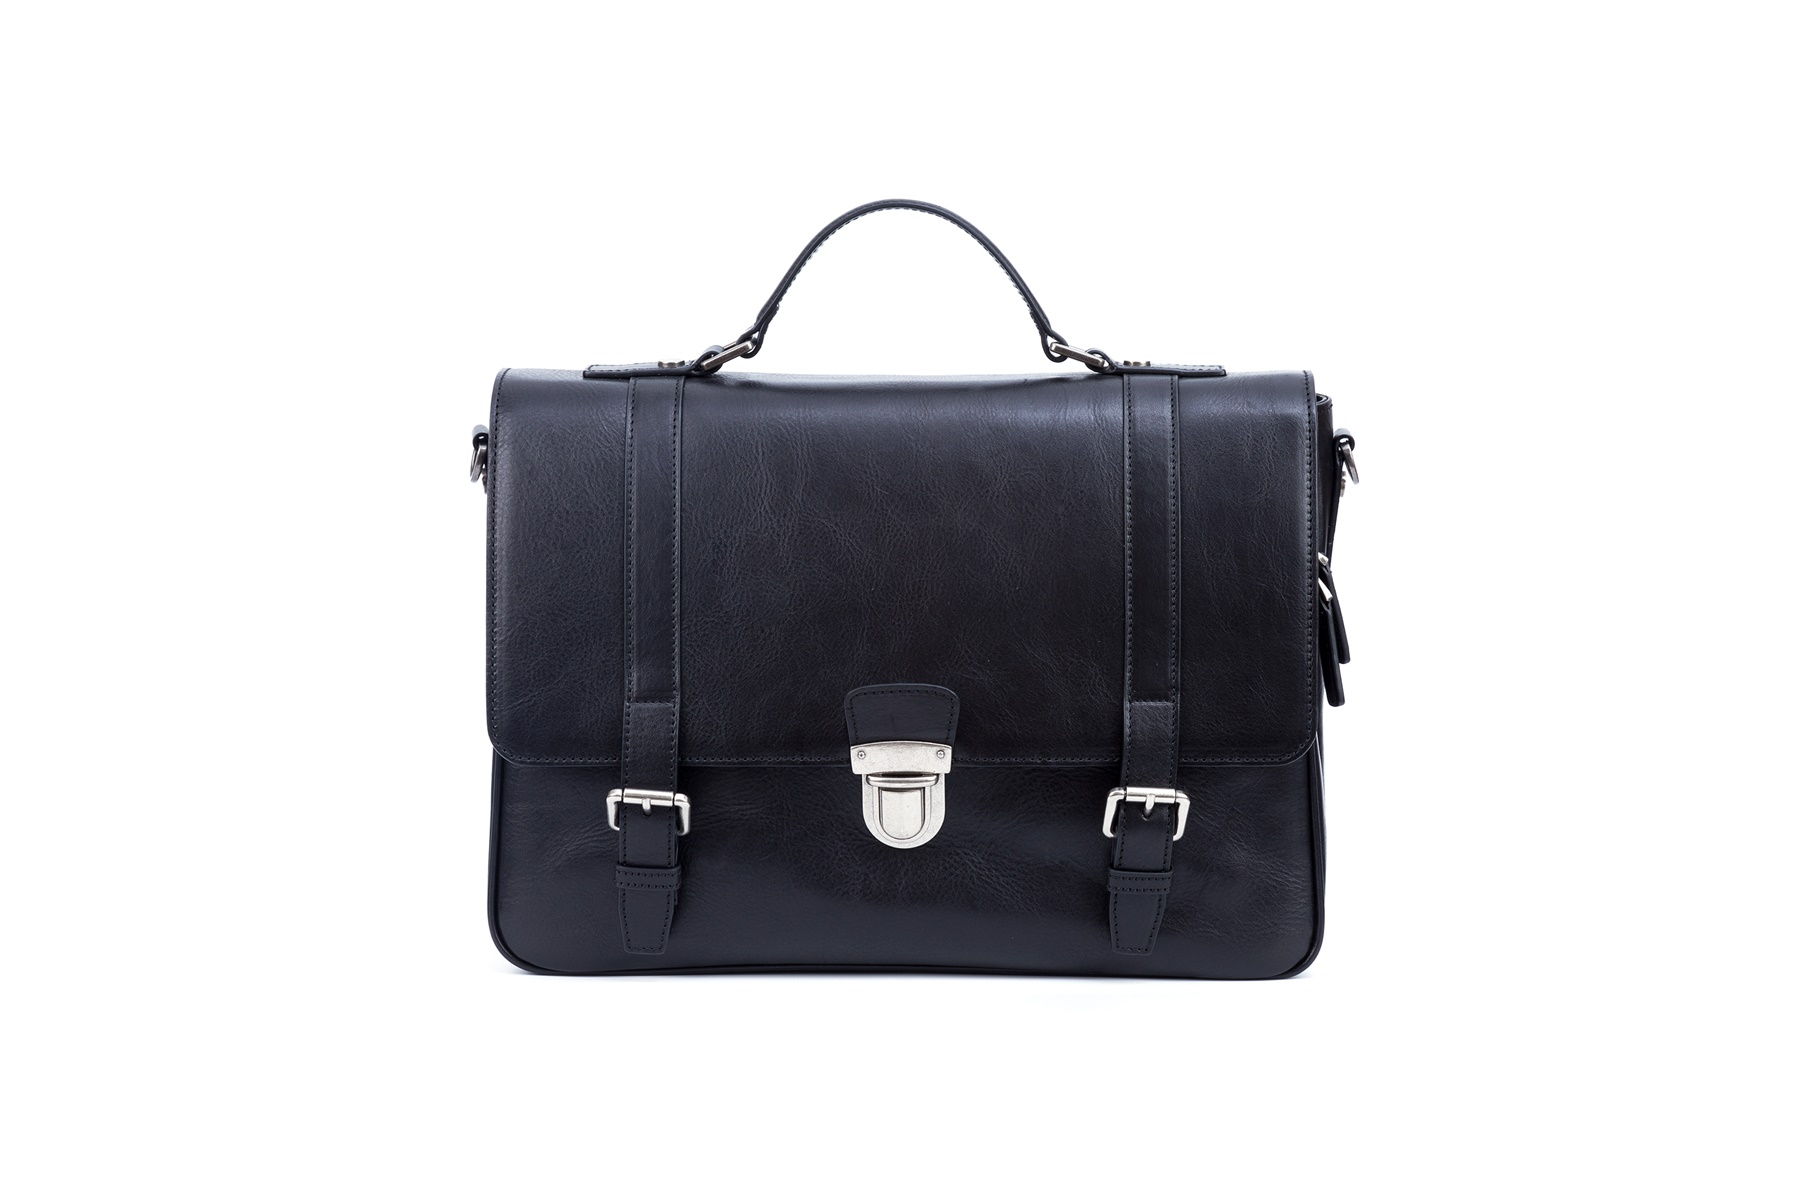 GF bags-Find Business Bag Mens Fashion Messenger Bag From GF Bags-4